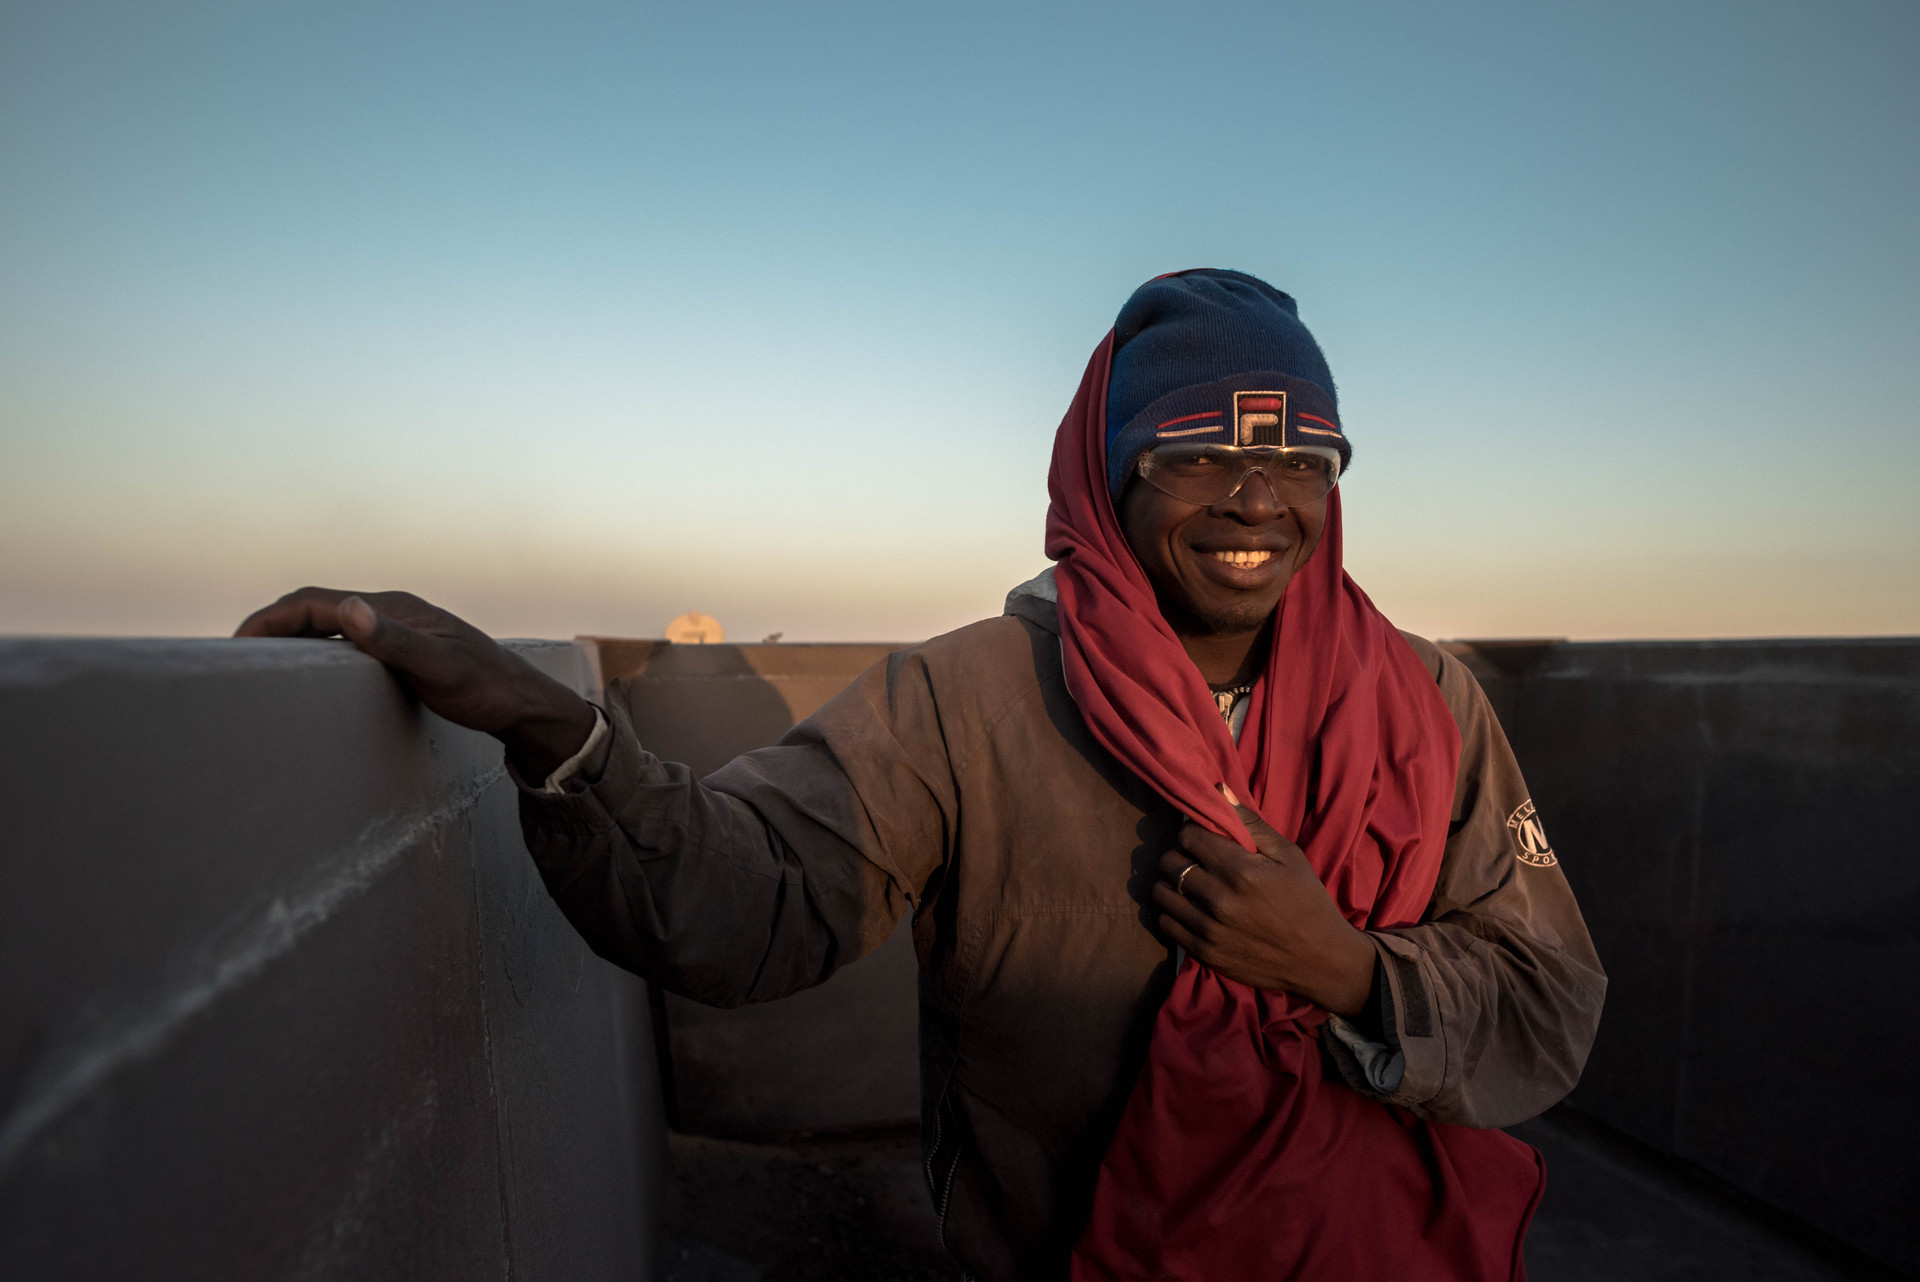 After battling a long cold night, a Malian mine worker continues his journy on his way back to the iron-ore mines.